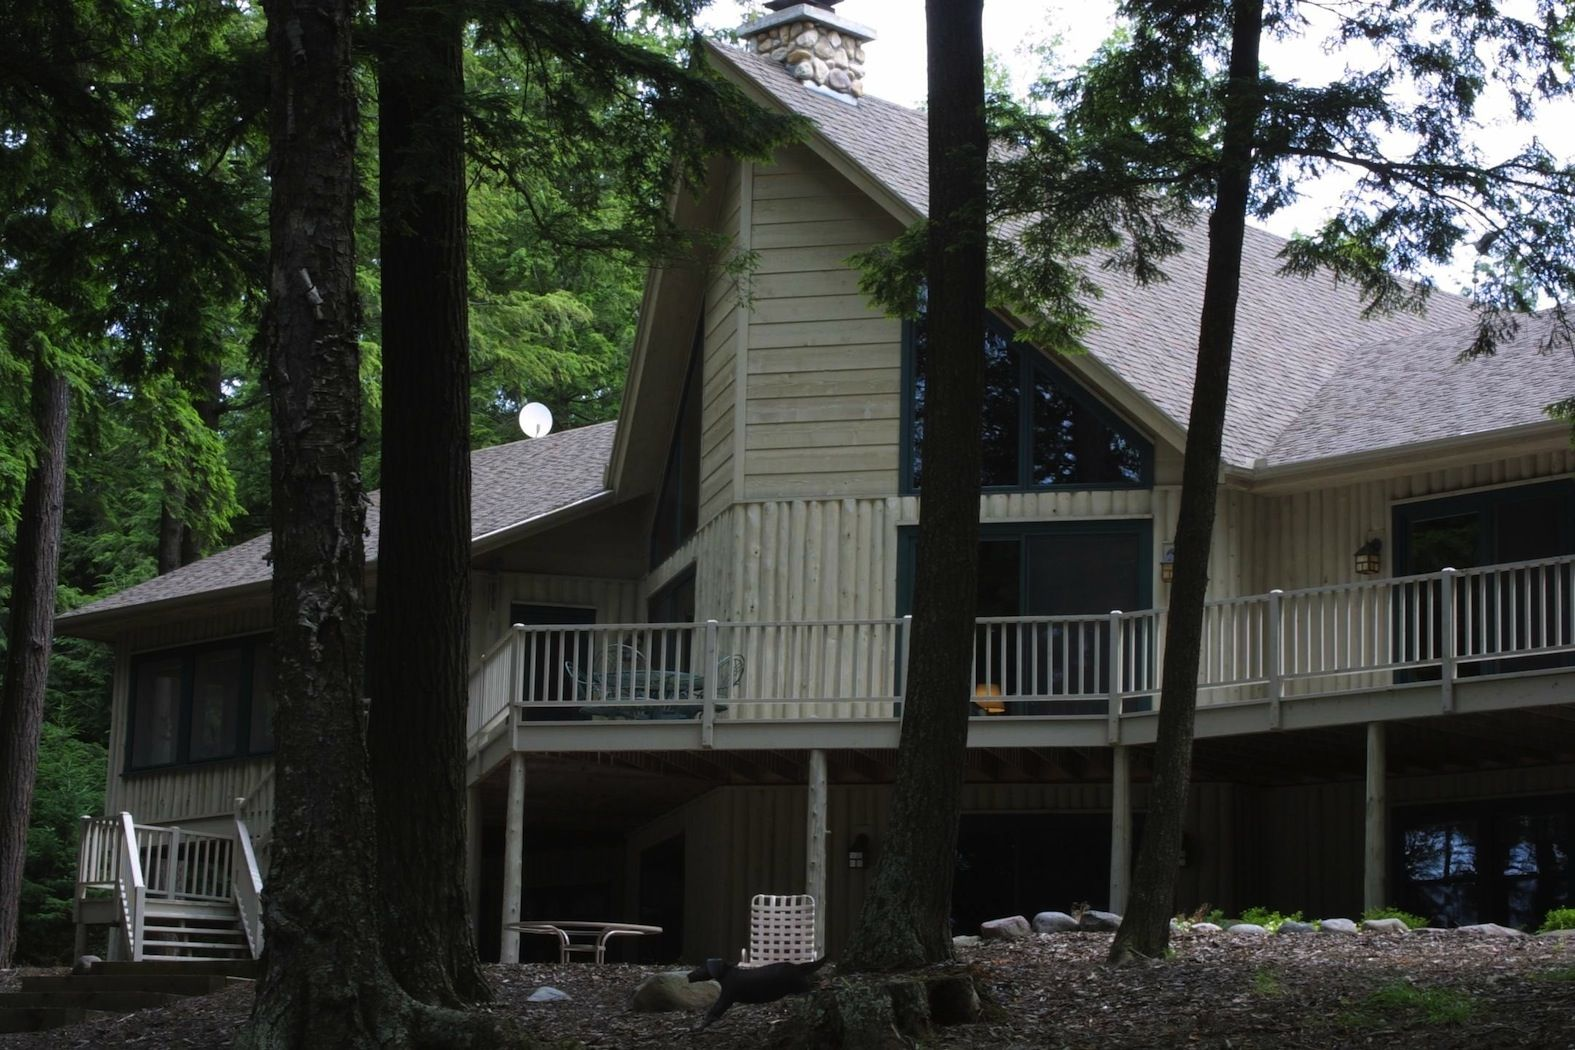 During the design phase of this home, the homeowner wanted to have the efficiency and durability of a stick framed home while giving the home a vertical log appearance, which was popular in the early 1900's. We accomplished this and really enjoyed working with the homeowner through the whole process.